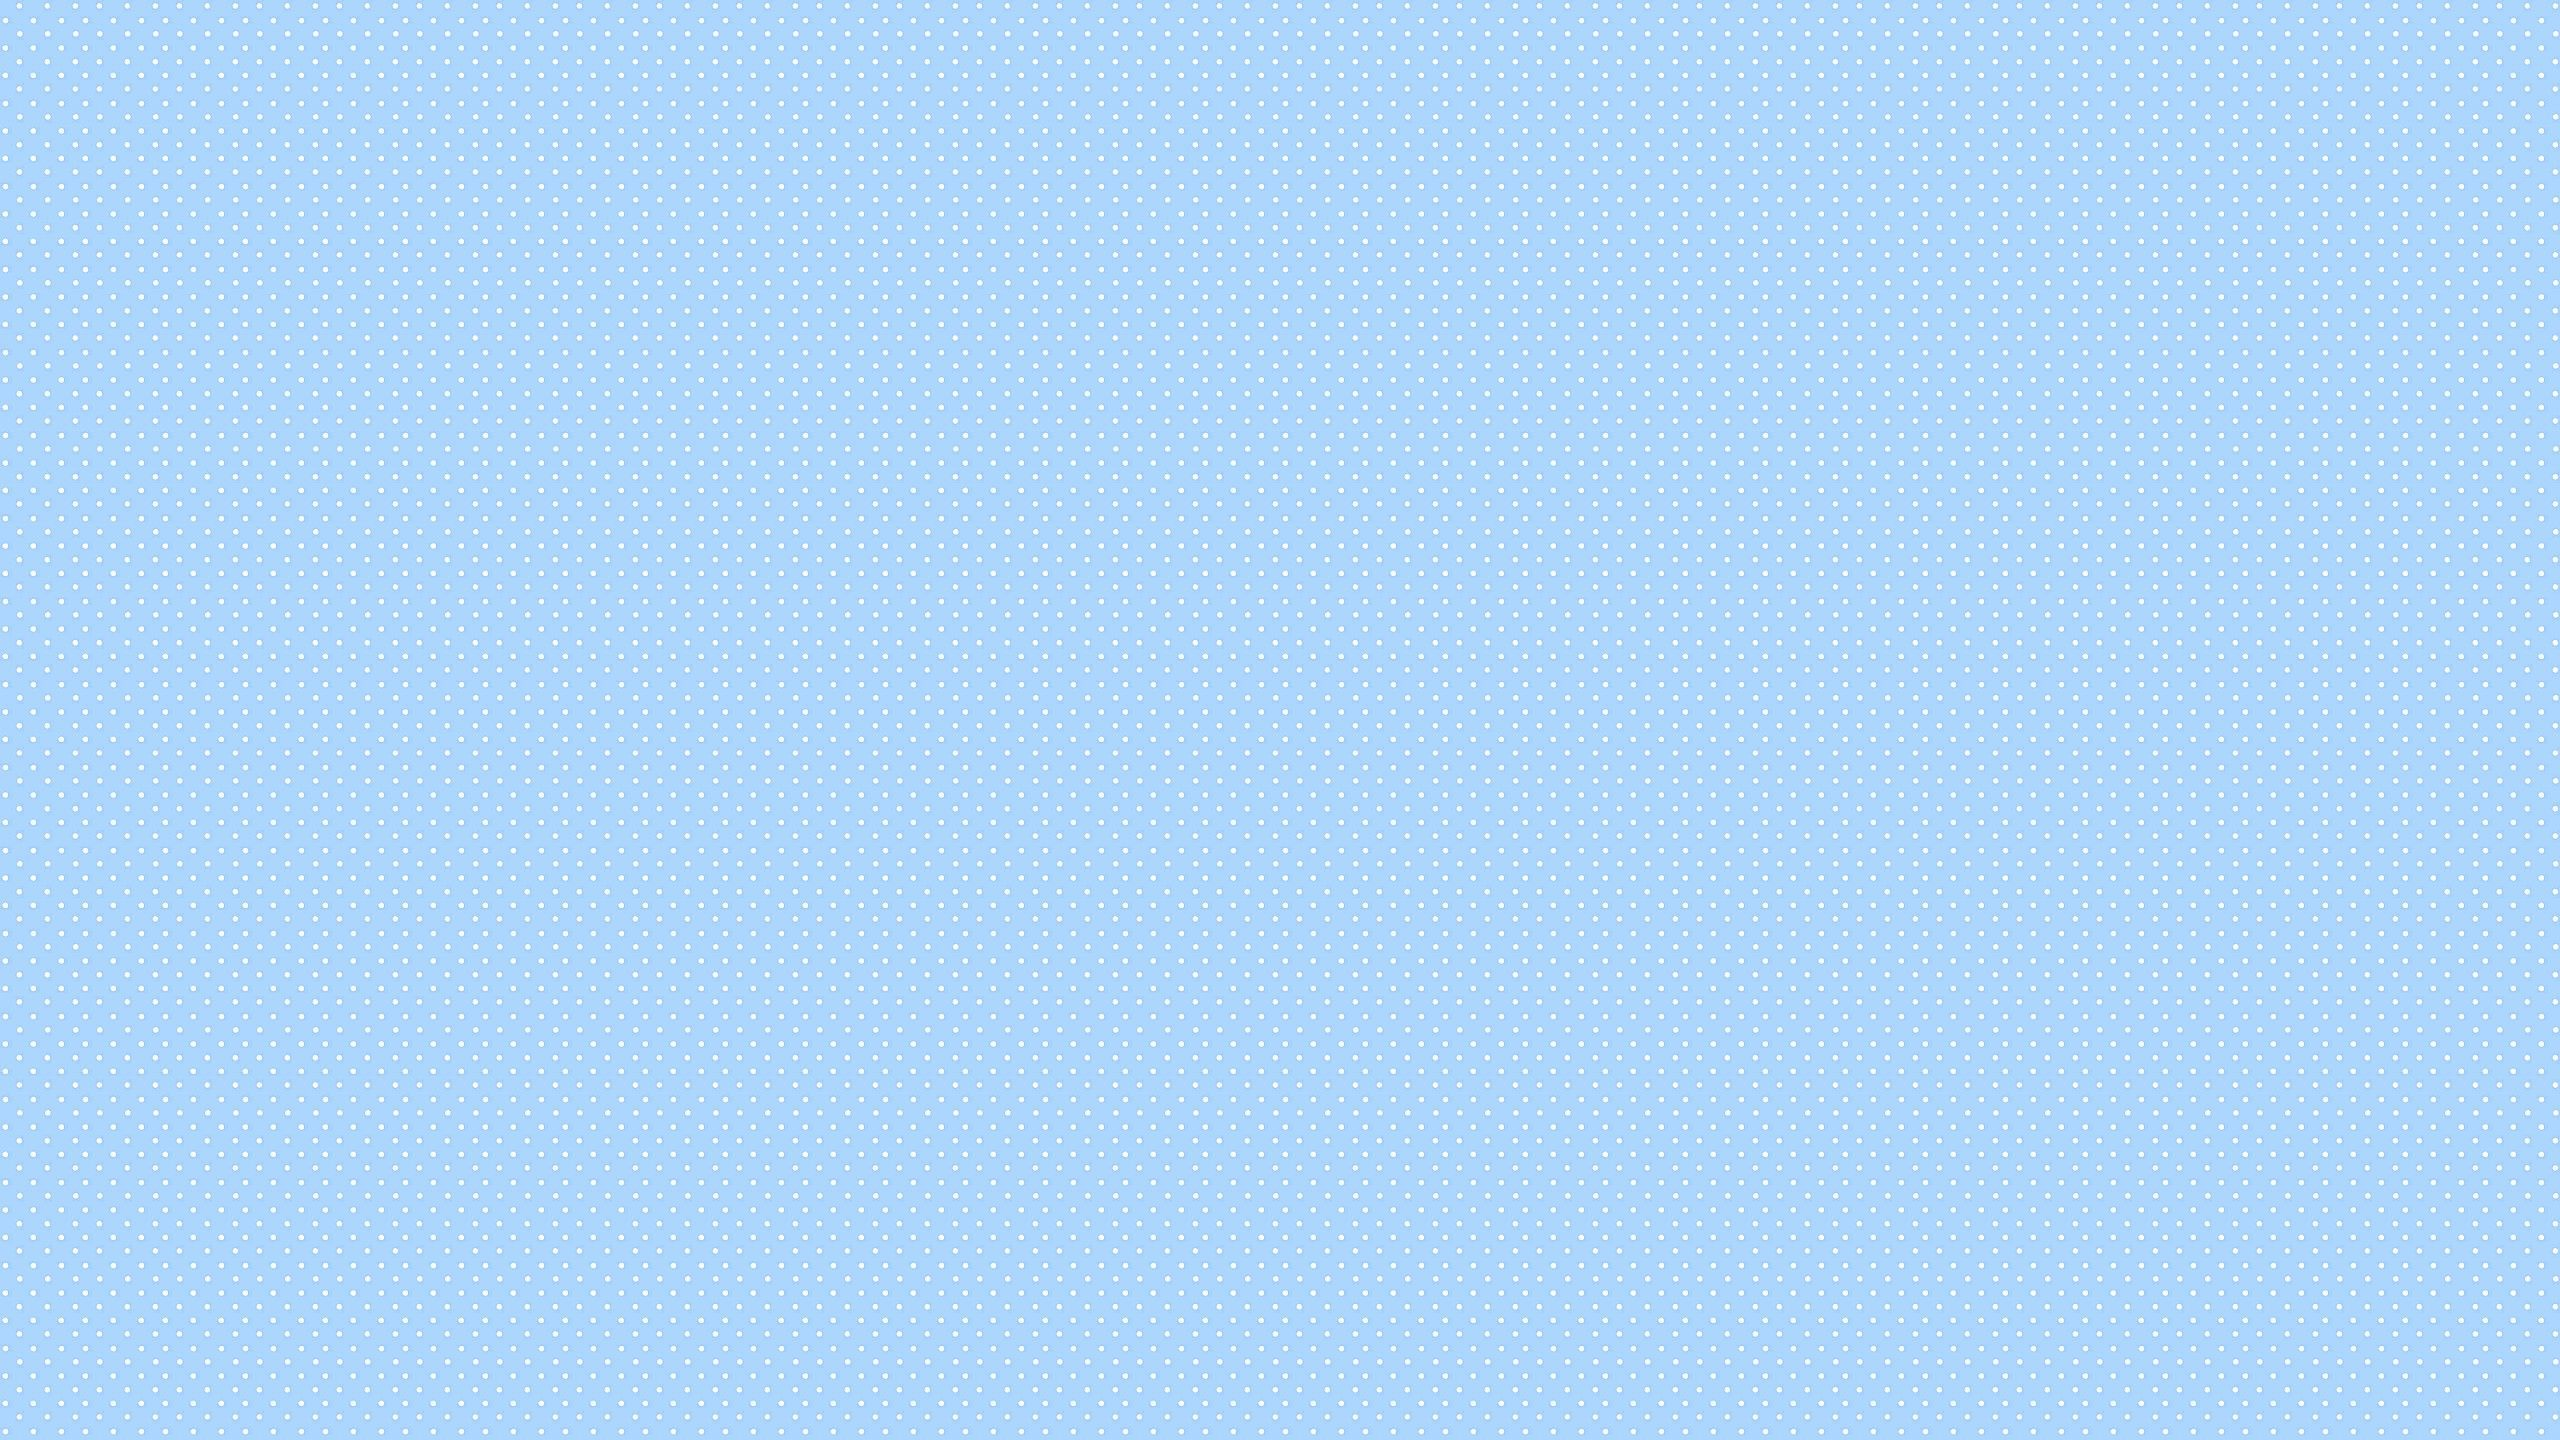 Pastel Blue Ombre Wallpapers - Top Free Pastel Blue Ombre ...